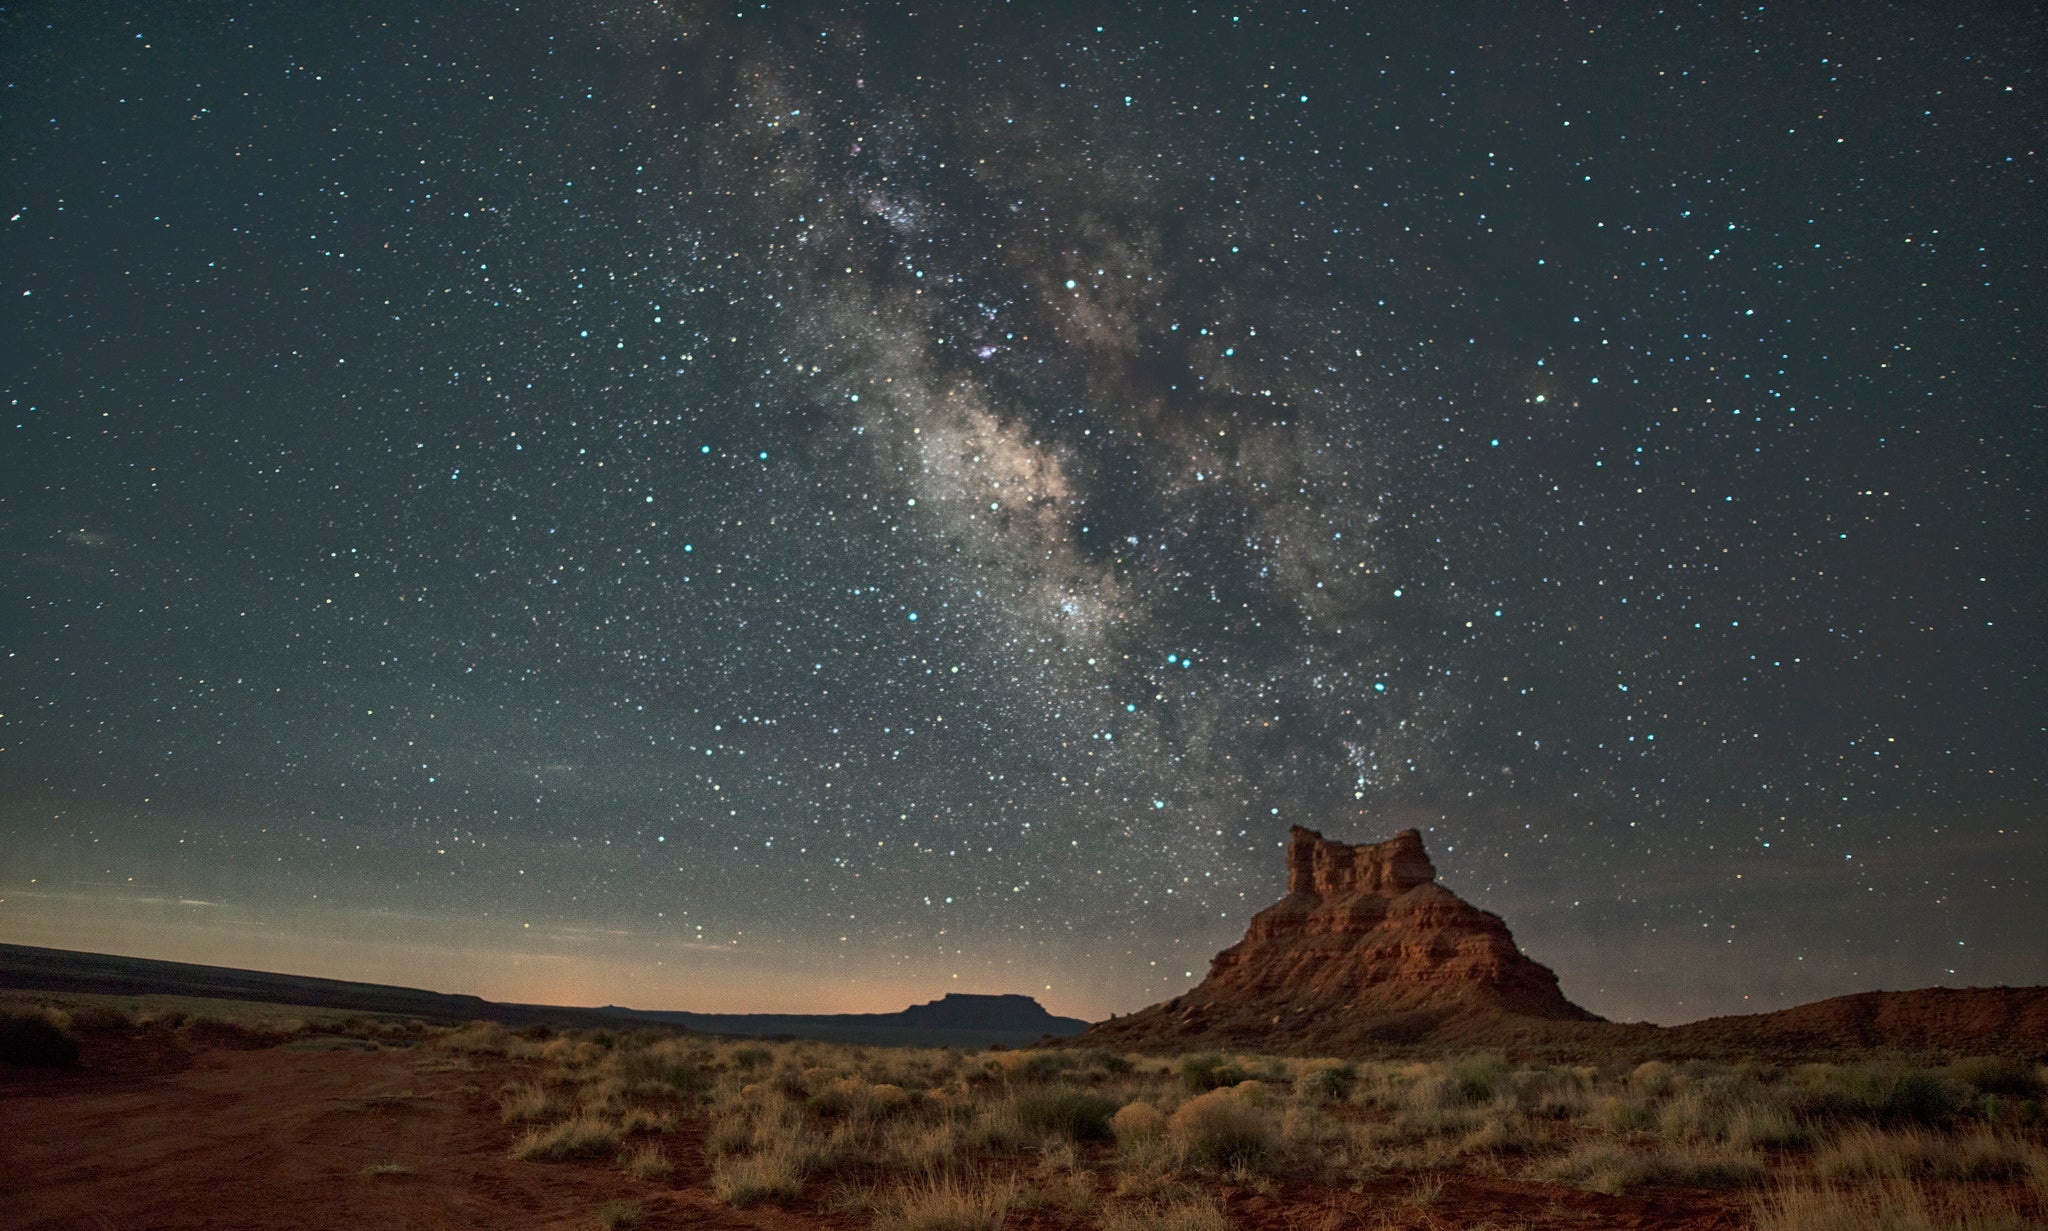 27 National Monuments Under Review by Interior Department